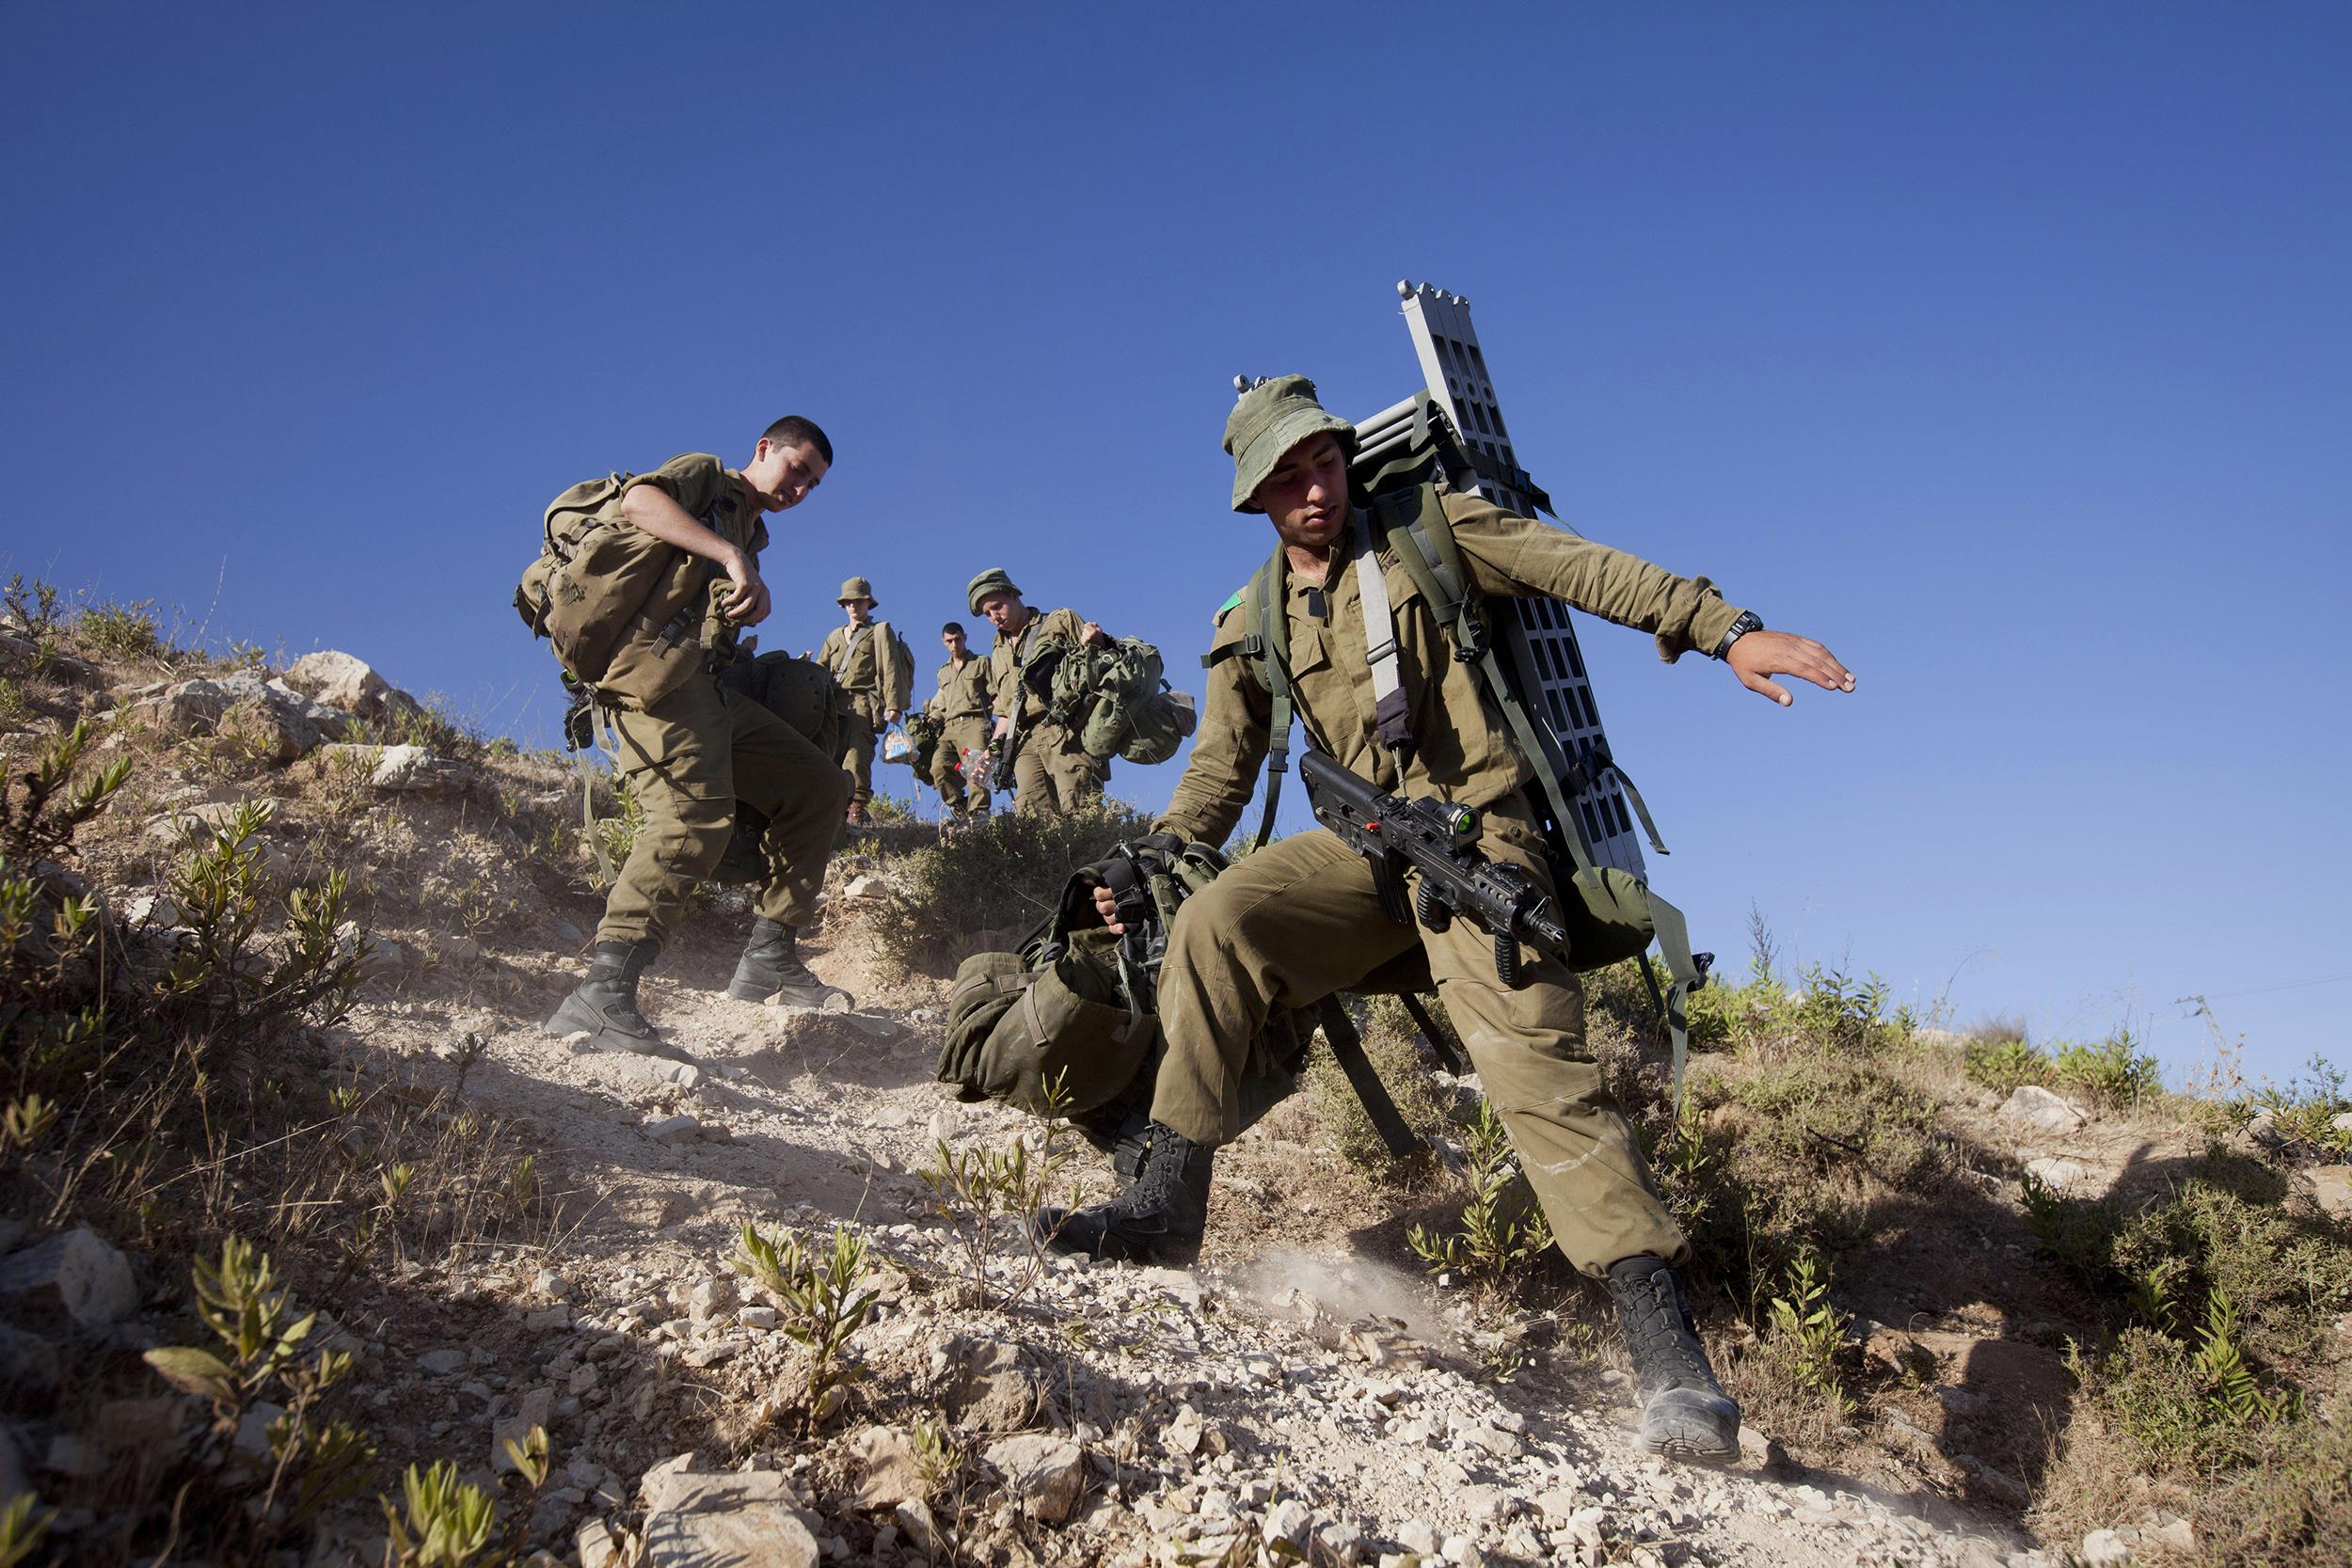 Image: Israeli soldiers search for three missing teens, in the town of Halhul near the West Bank city of Hebron, on June 24.